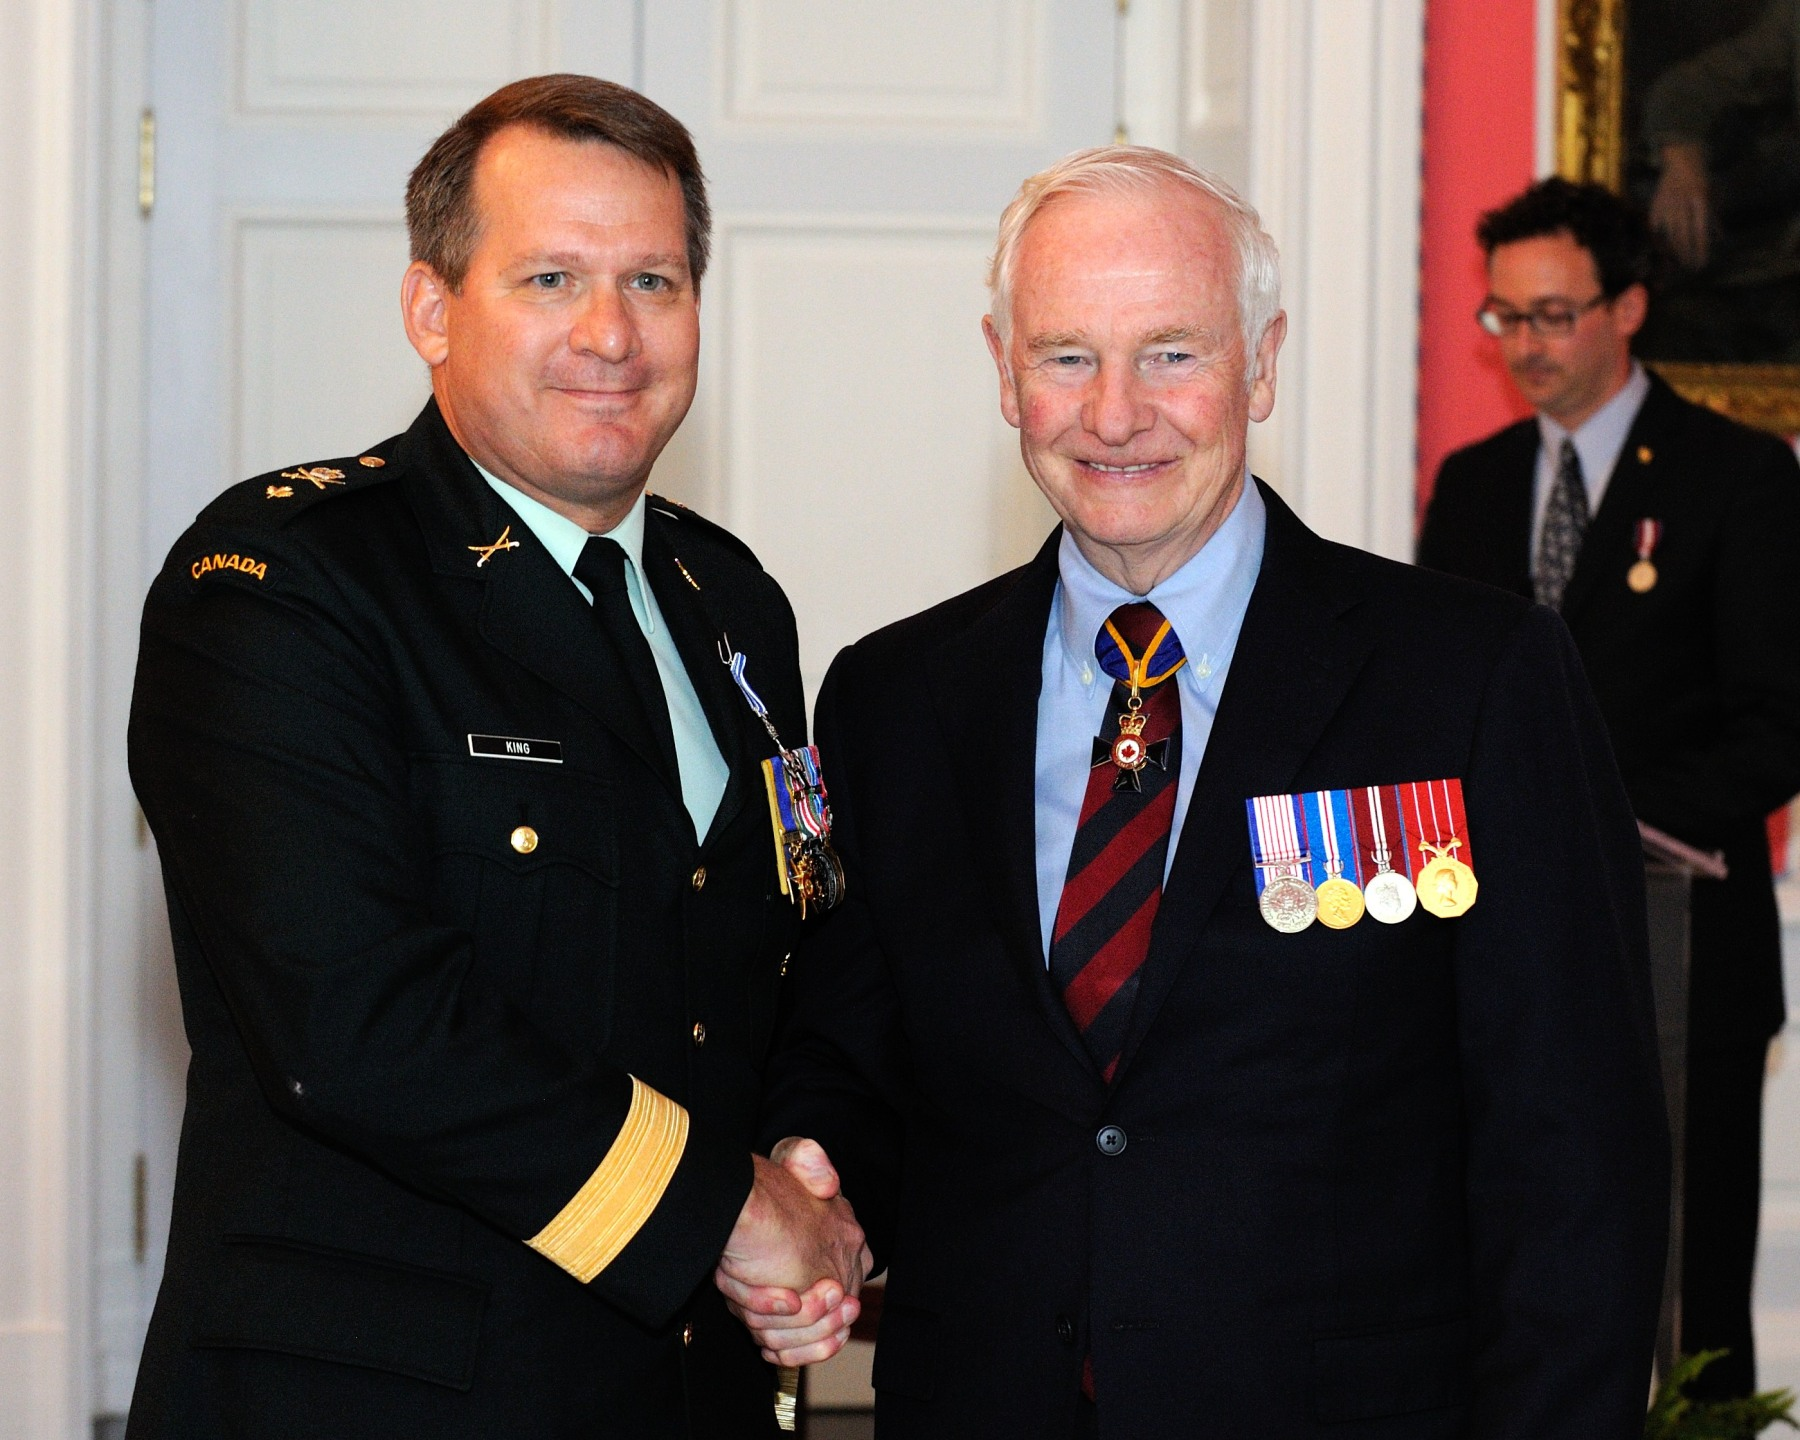 Brigadier-General Craig Randall King, O.M.M., M.S.C., C.D., M.B.E., received the Meritorious Service Cross (Military Division) from His Excellency. While deployed within Regional Command (South) in Afghanistan from December 2009 to September 2010, Brigadier-General King played a critical role during a defining moment in the campaign. As the driving force behind the expansion of Afghan National Security Forces, particularly the Afghan National Police, he worked with Afghan and coalition stakeholders to institute a complete review of personnel and equipment that provided an accurate assessment of the current situation and facilitated decision making. Brigadier-General King's leadership and work ethic contributed to the improvement of the security situation in southern Afghanistan and brought great credit to Canada and the Canadian Forces.